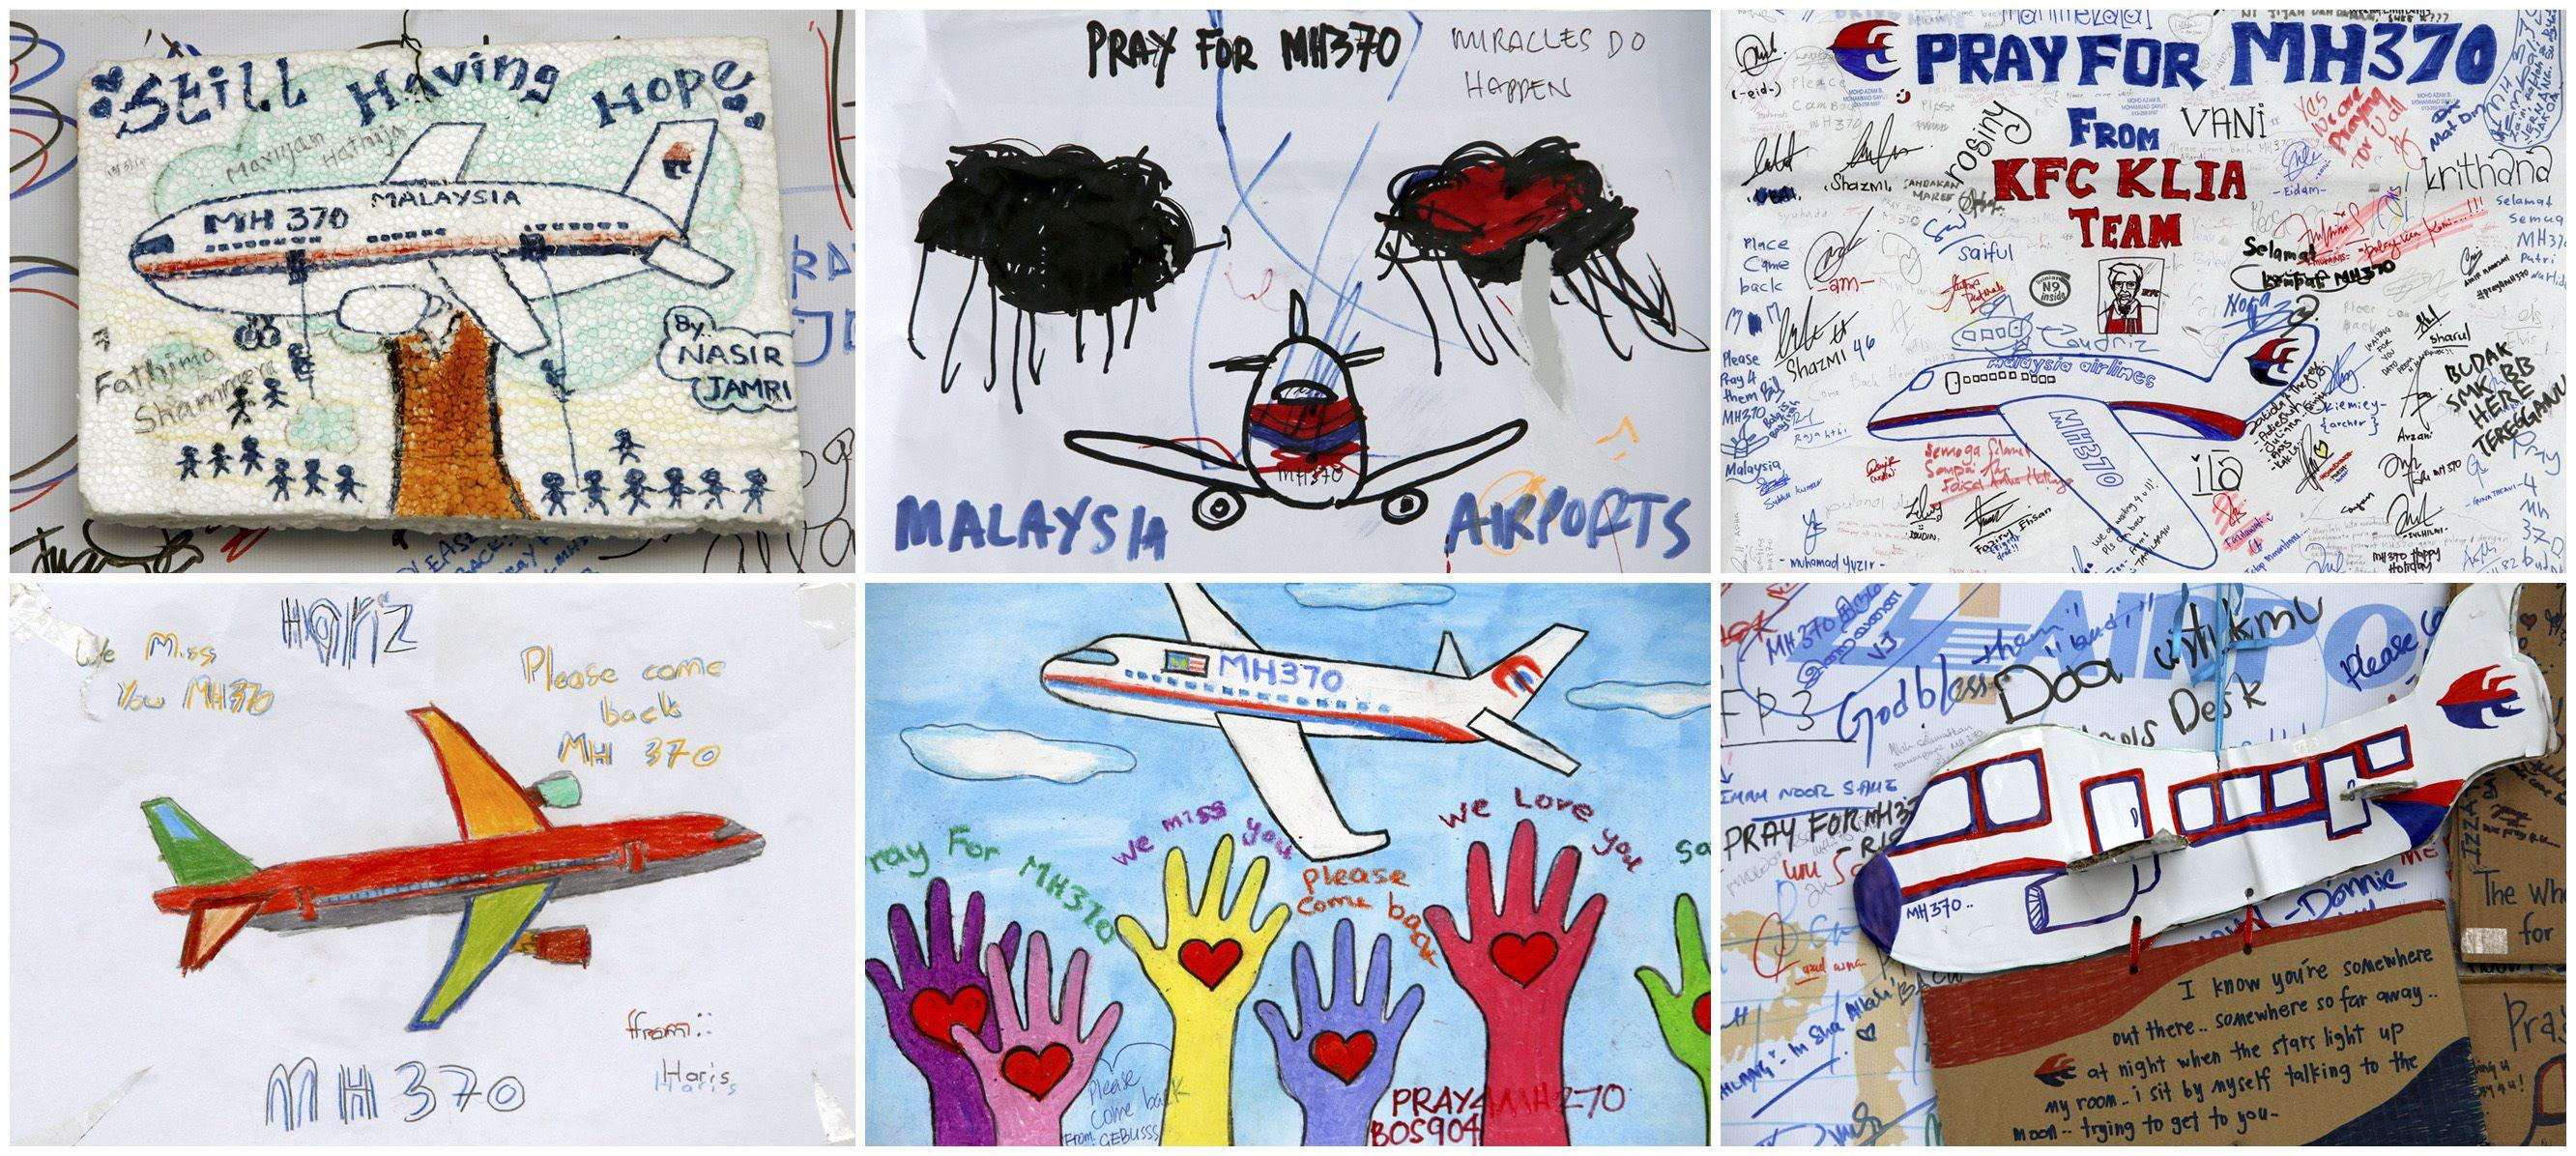 malaysia mh370 artwork March 19 2